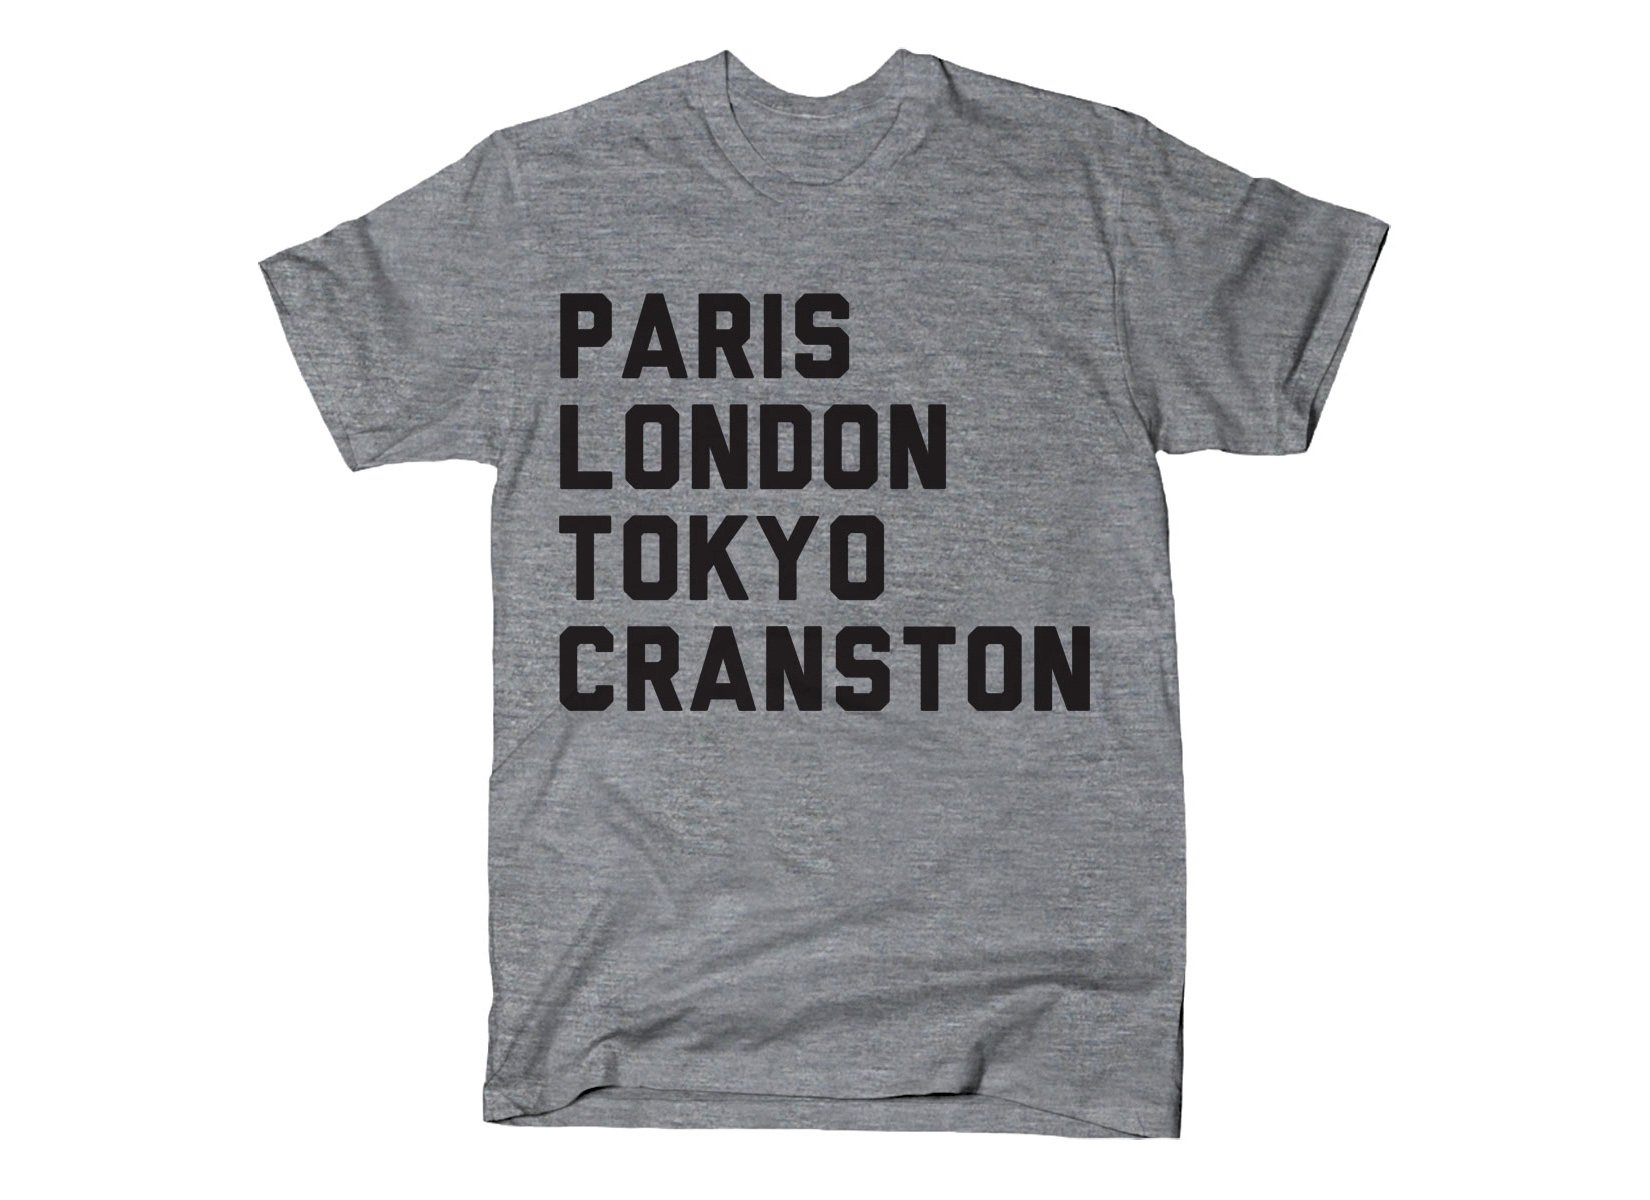 Cranston on Mens T-Shirt